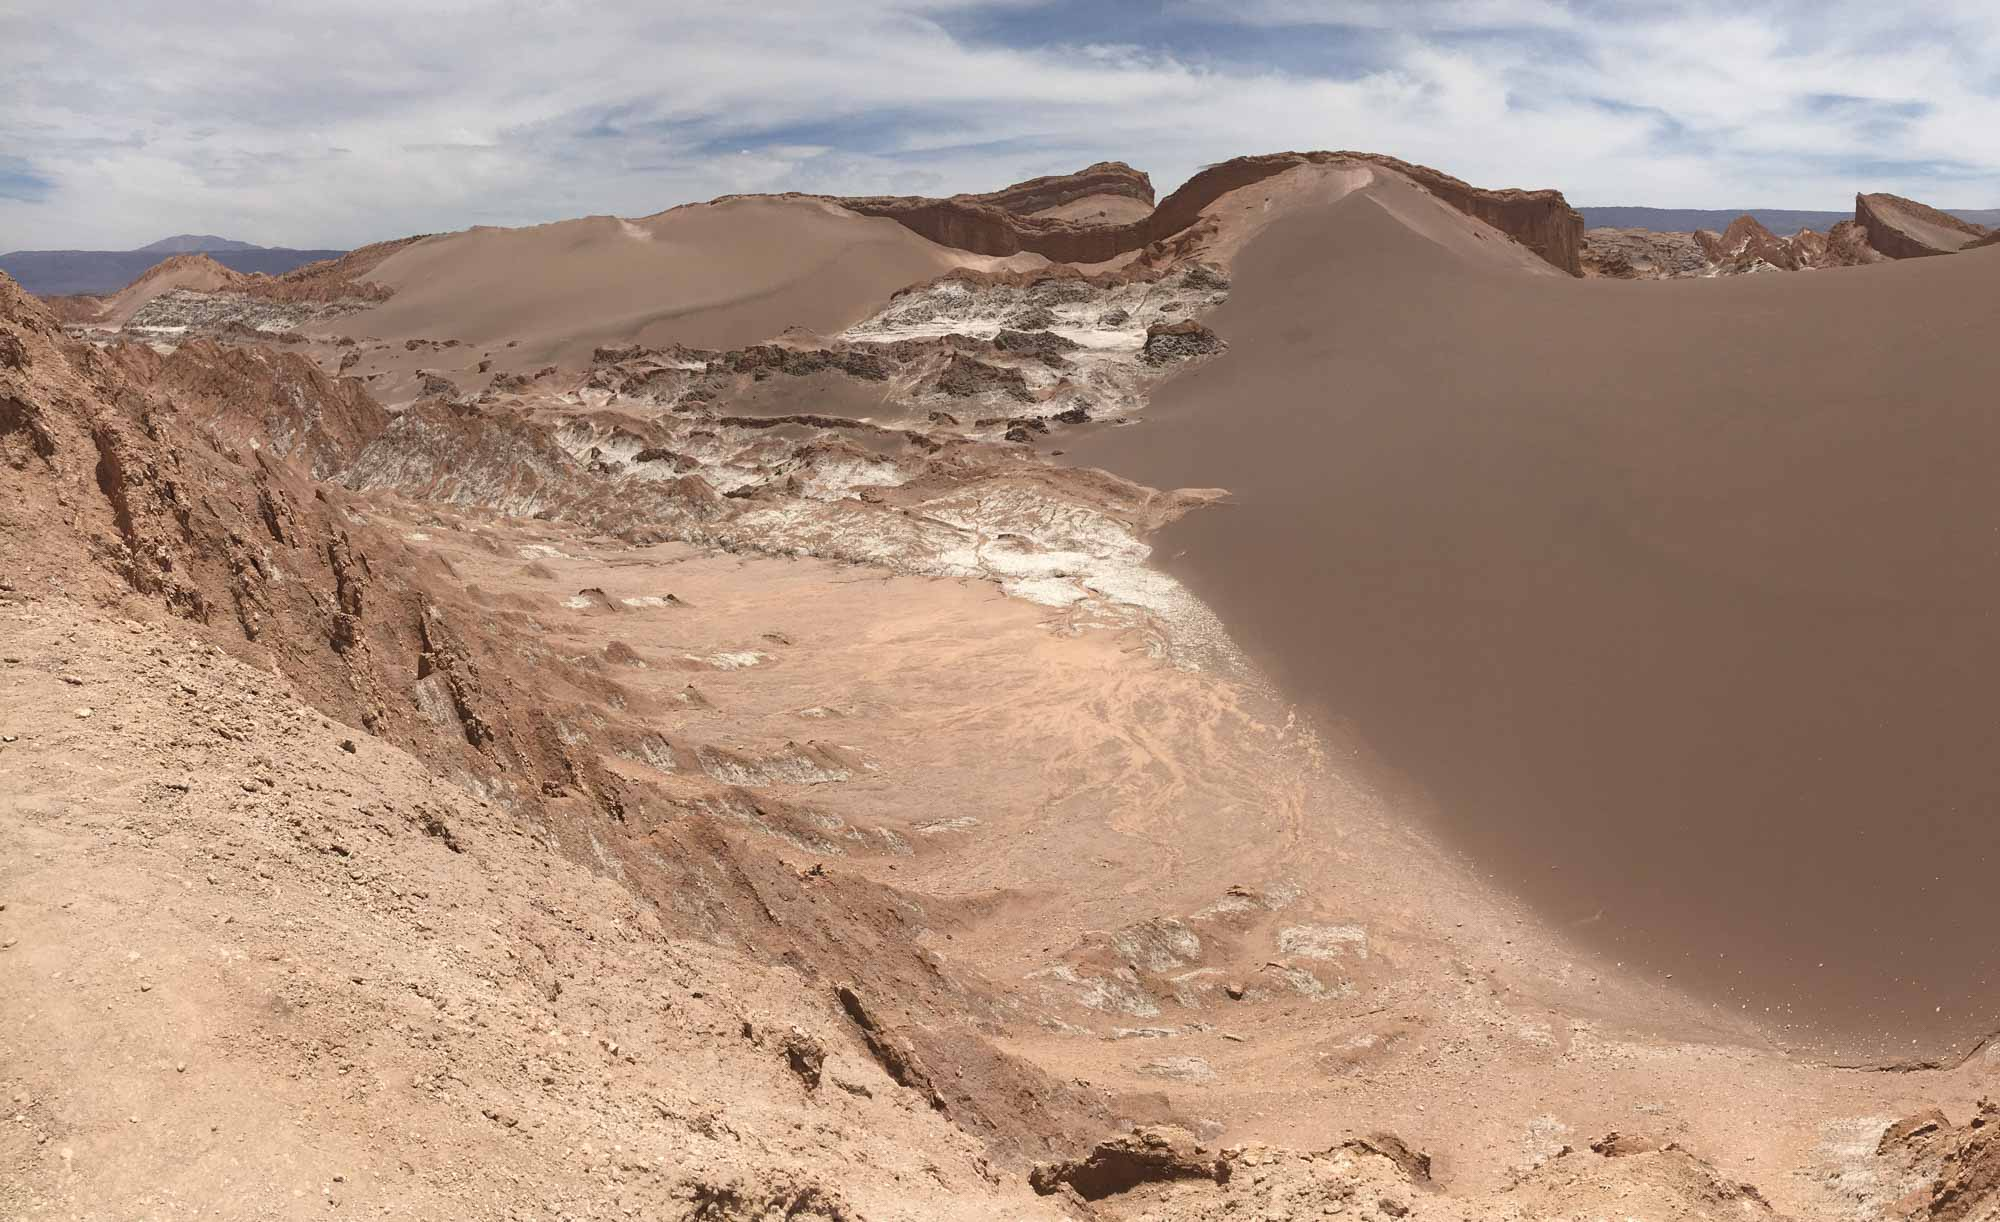 Sand dune in the Valle de la Luna